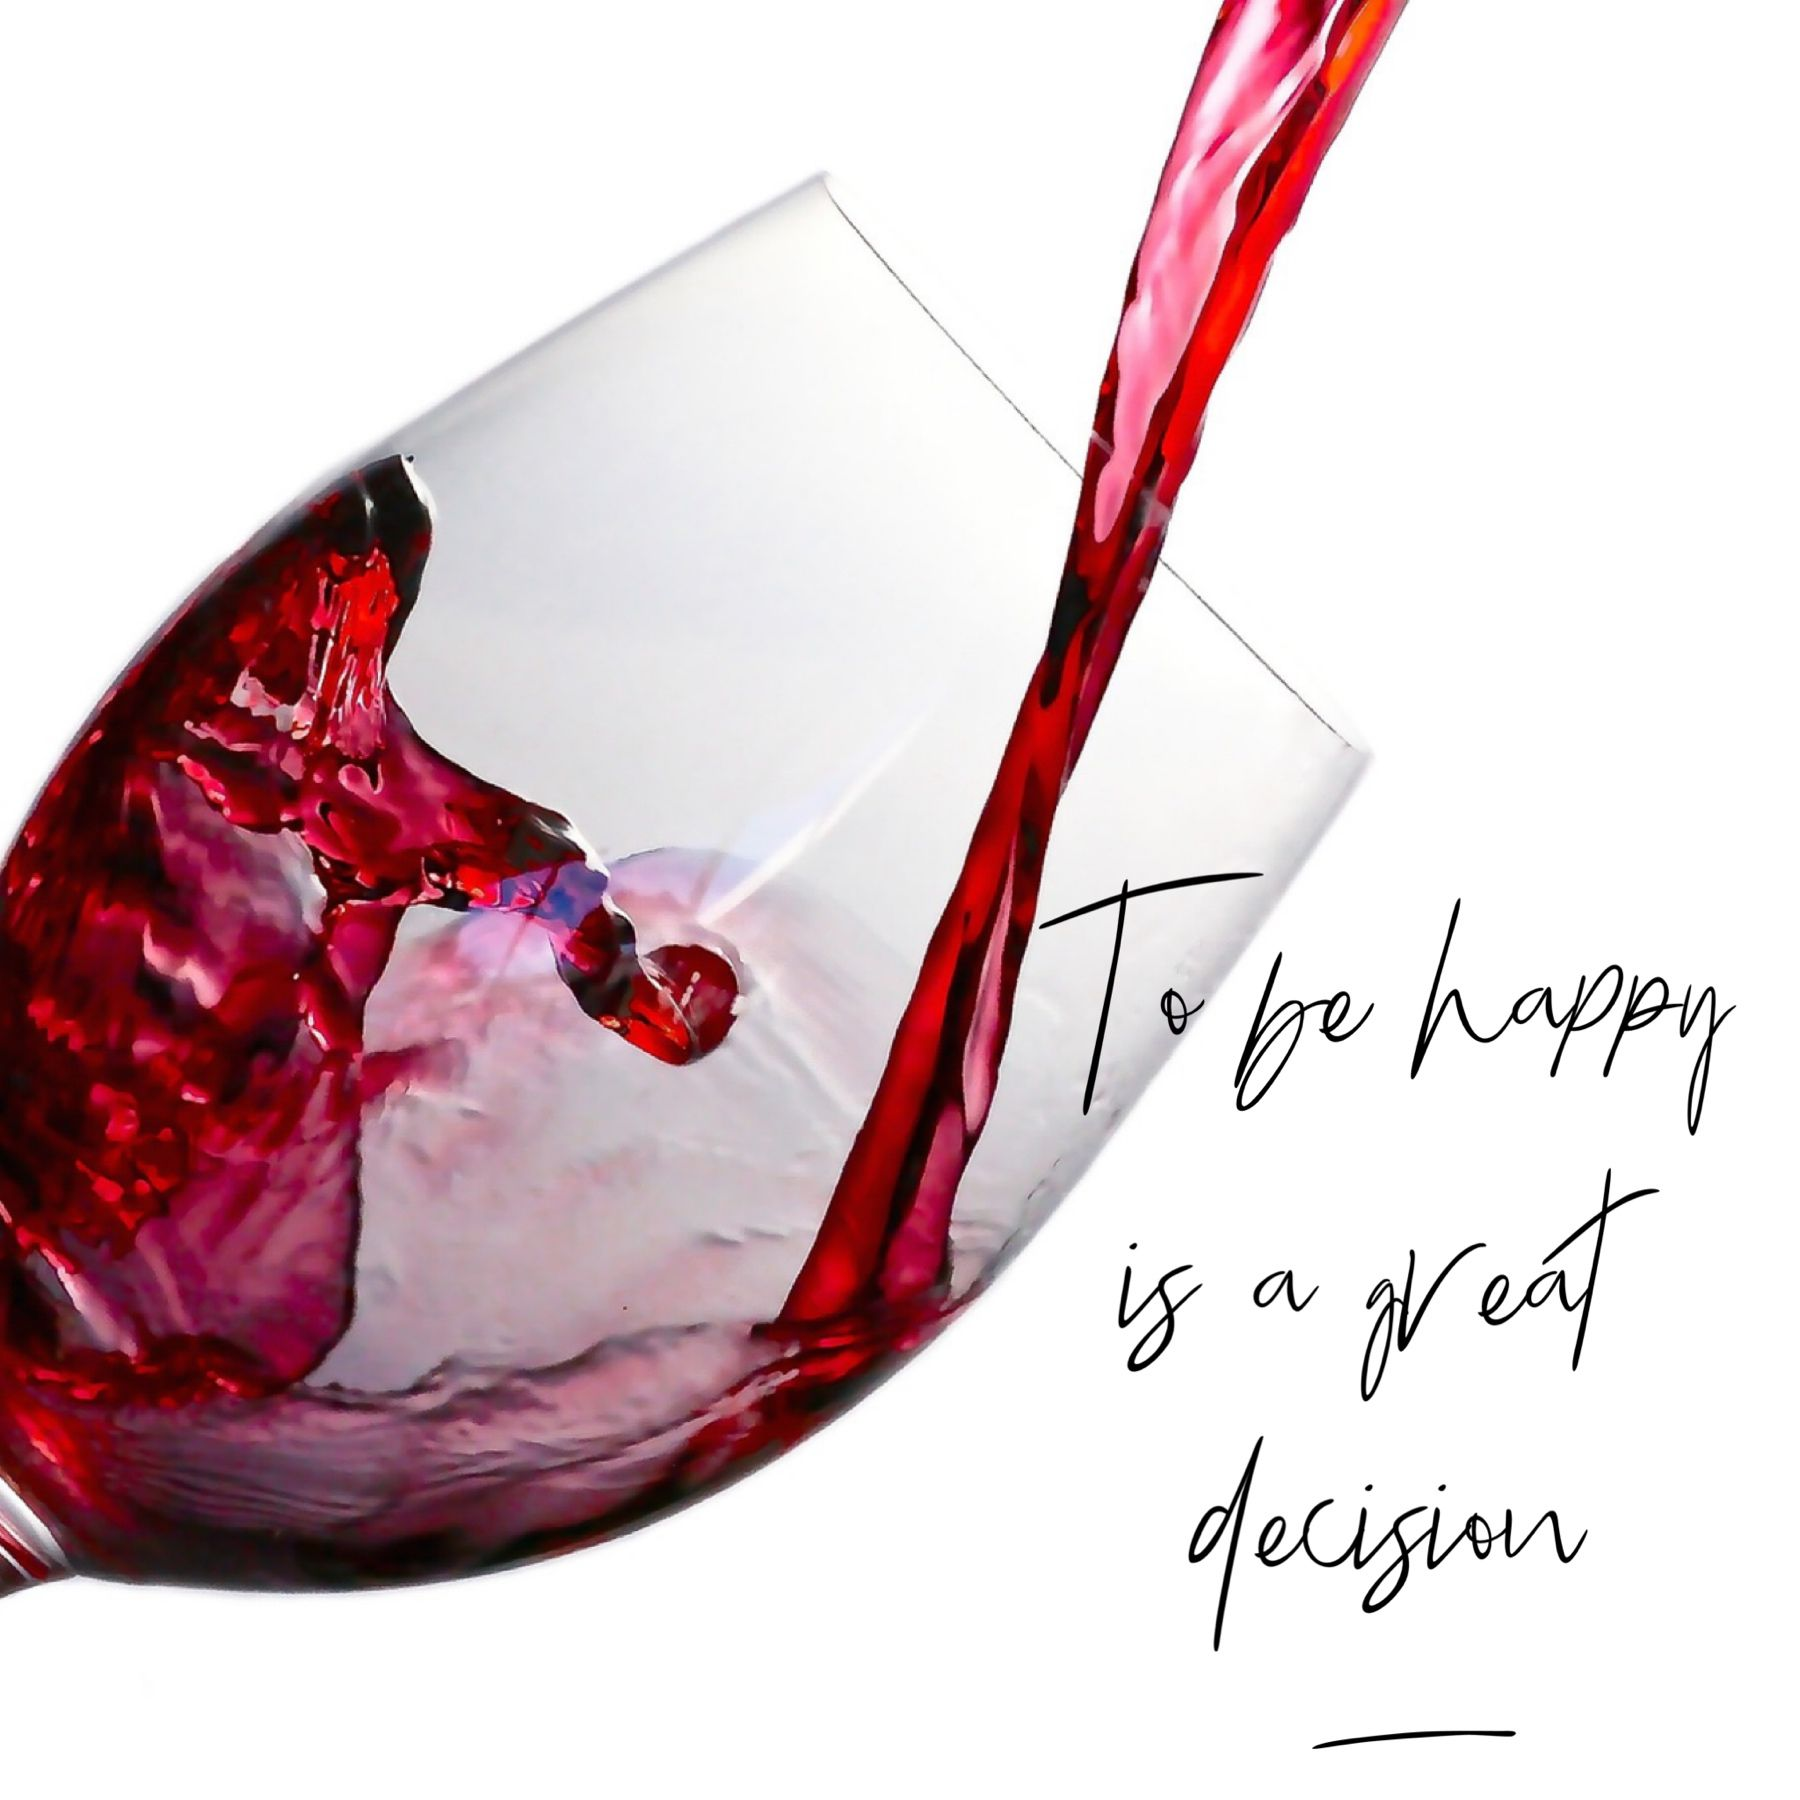 Don T Worry Be Happy And Drink Wine Wine Wednesday Wineo Wining Love Winelover Wineaboutit Wineocloc Wine Drinks Wine Facts Wine Snob